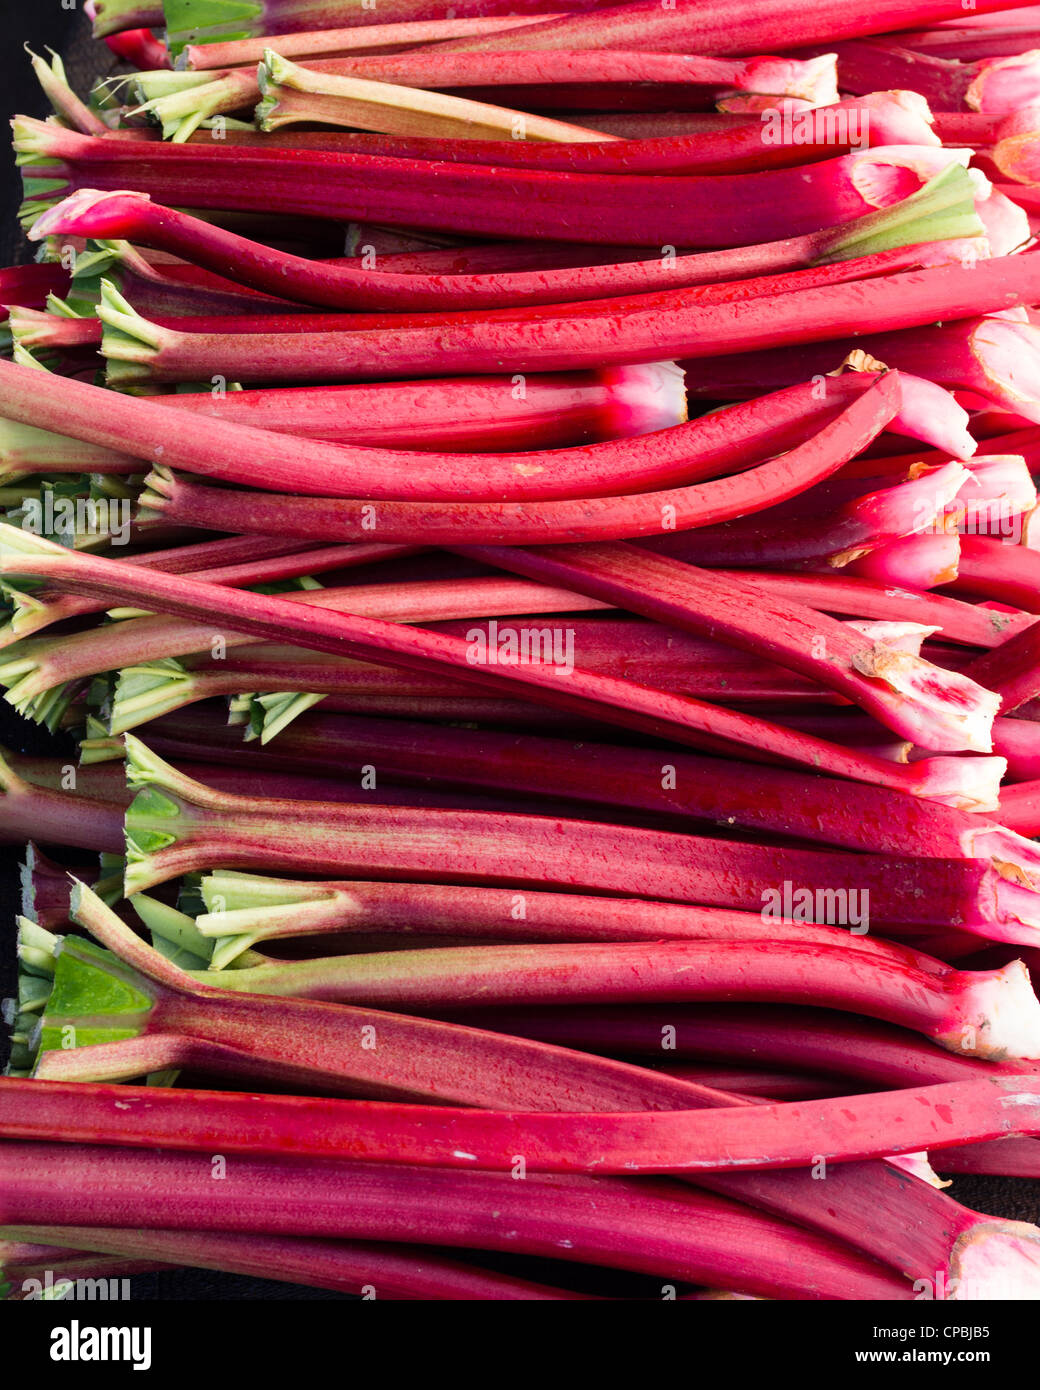 A display of red rhubarb stems harvested and ready to eat - Stock Image